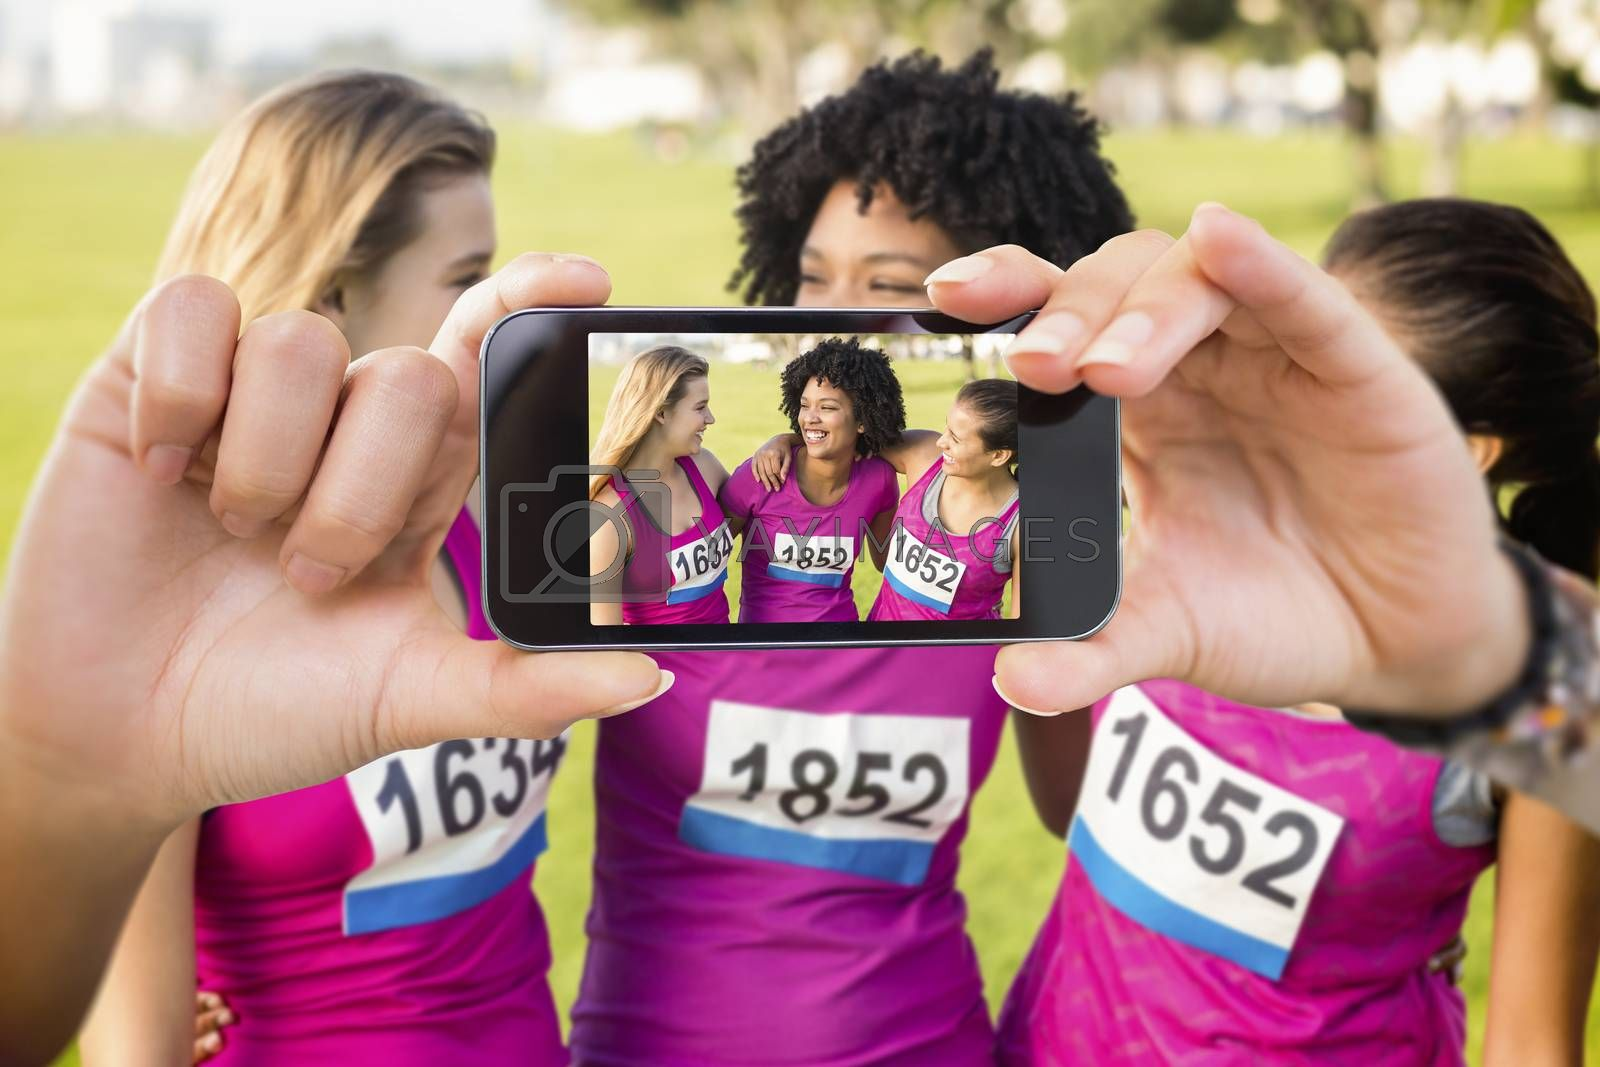 Hand holding smartphone showing against three laughing runners supporting breast cancer marathon